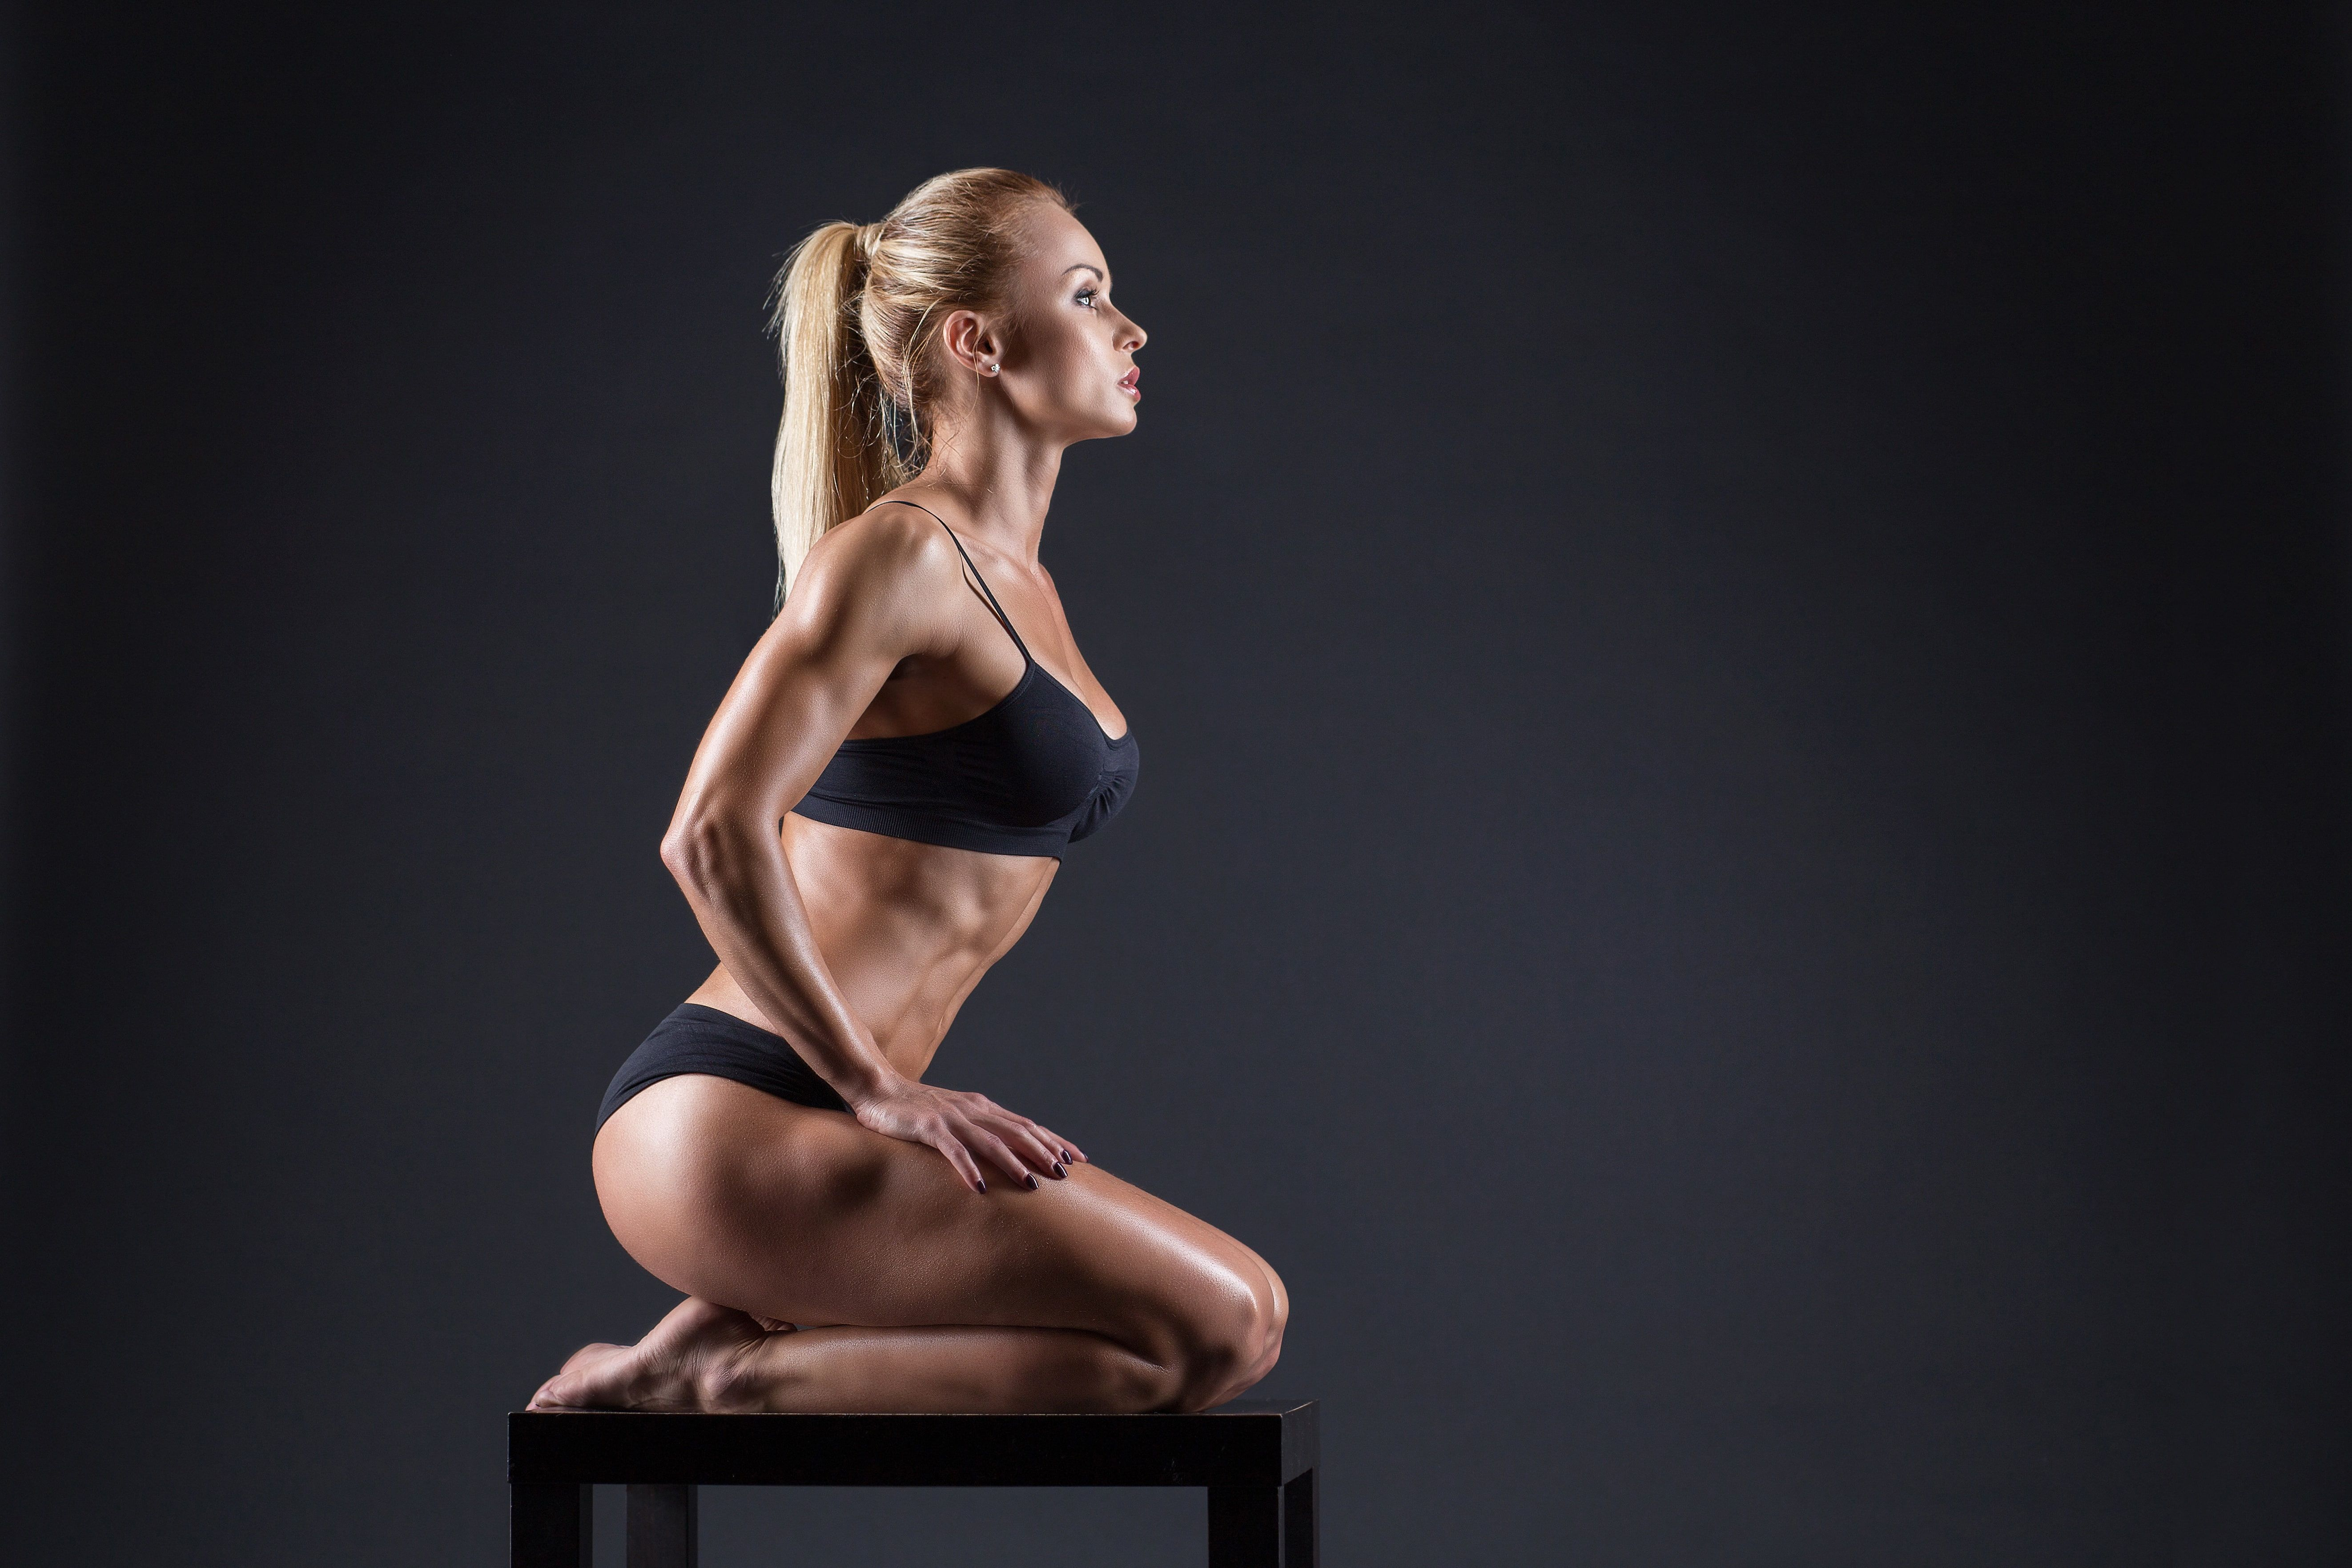 #model #pose #female #fitness #dumbbell toned body #sculpted #5K #wallpaper #hdwallpaper #desktop